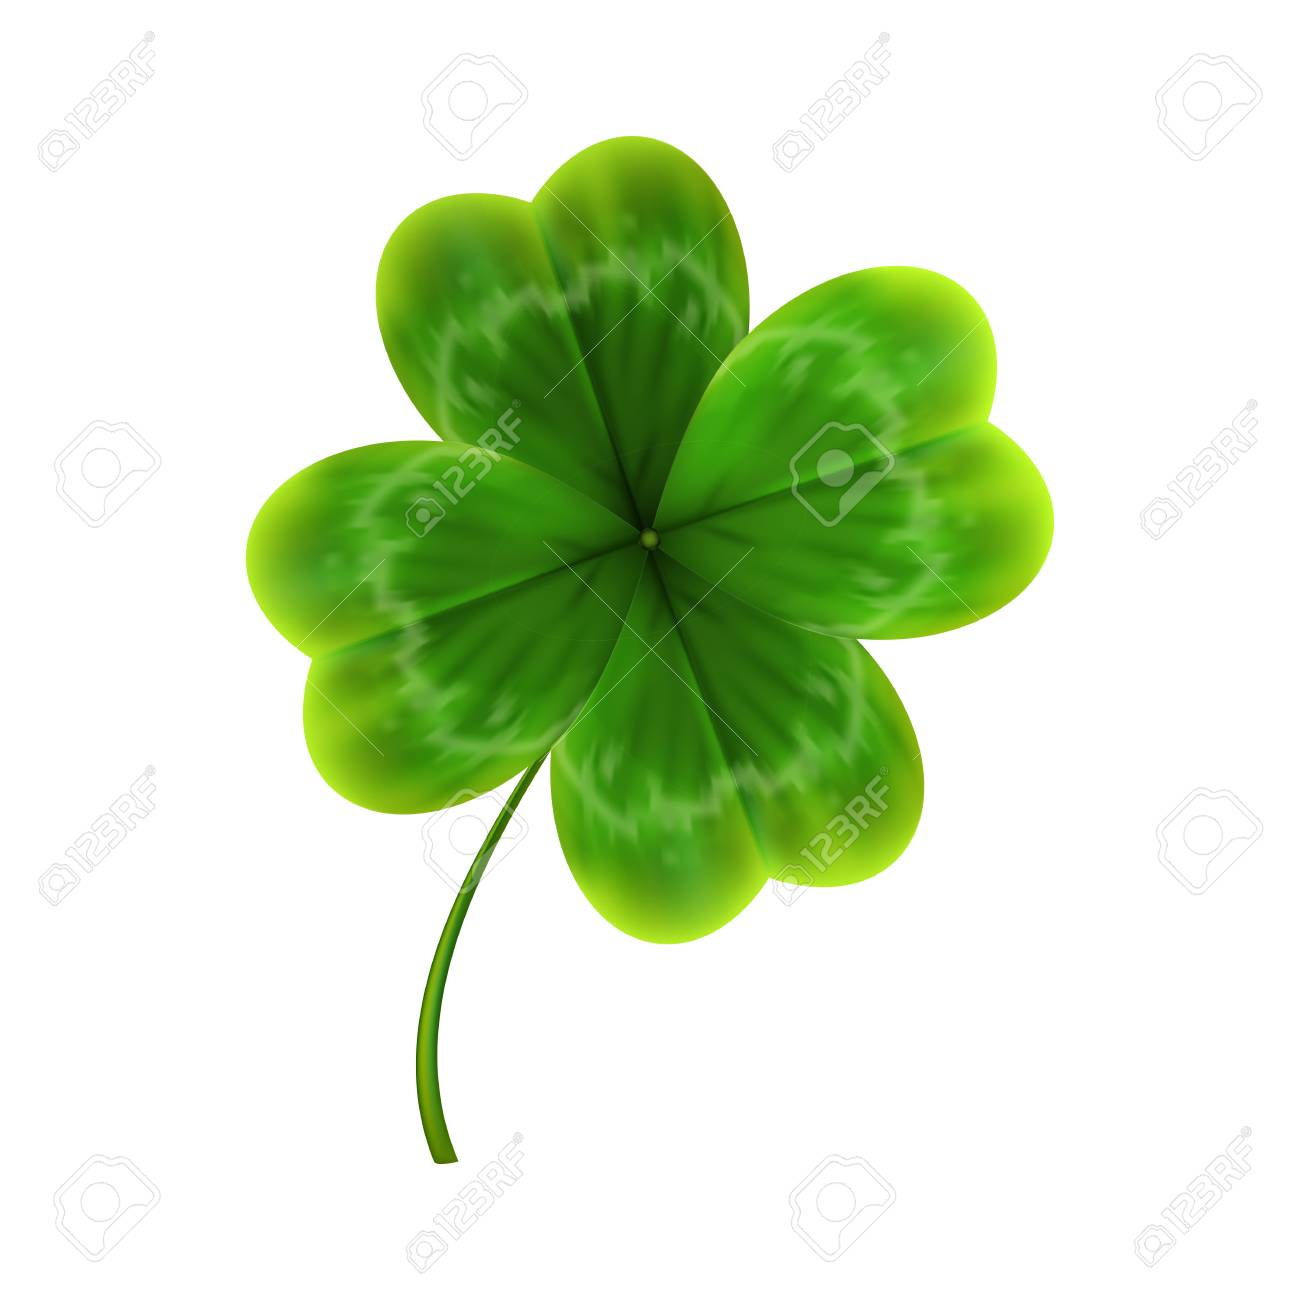 green leave of clover. realistic 3d vector illustration - 95055458